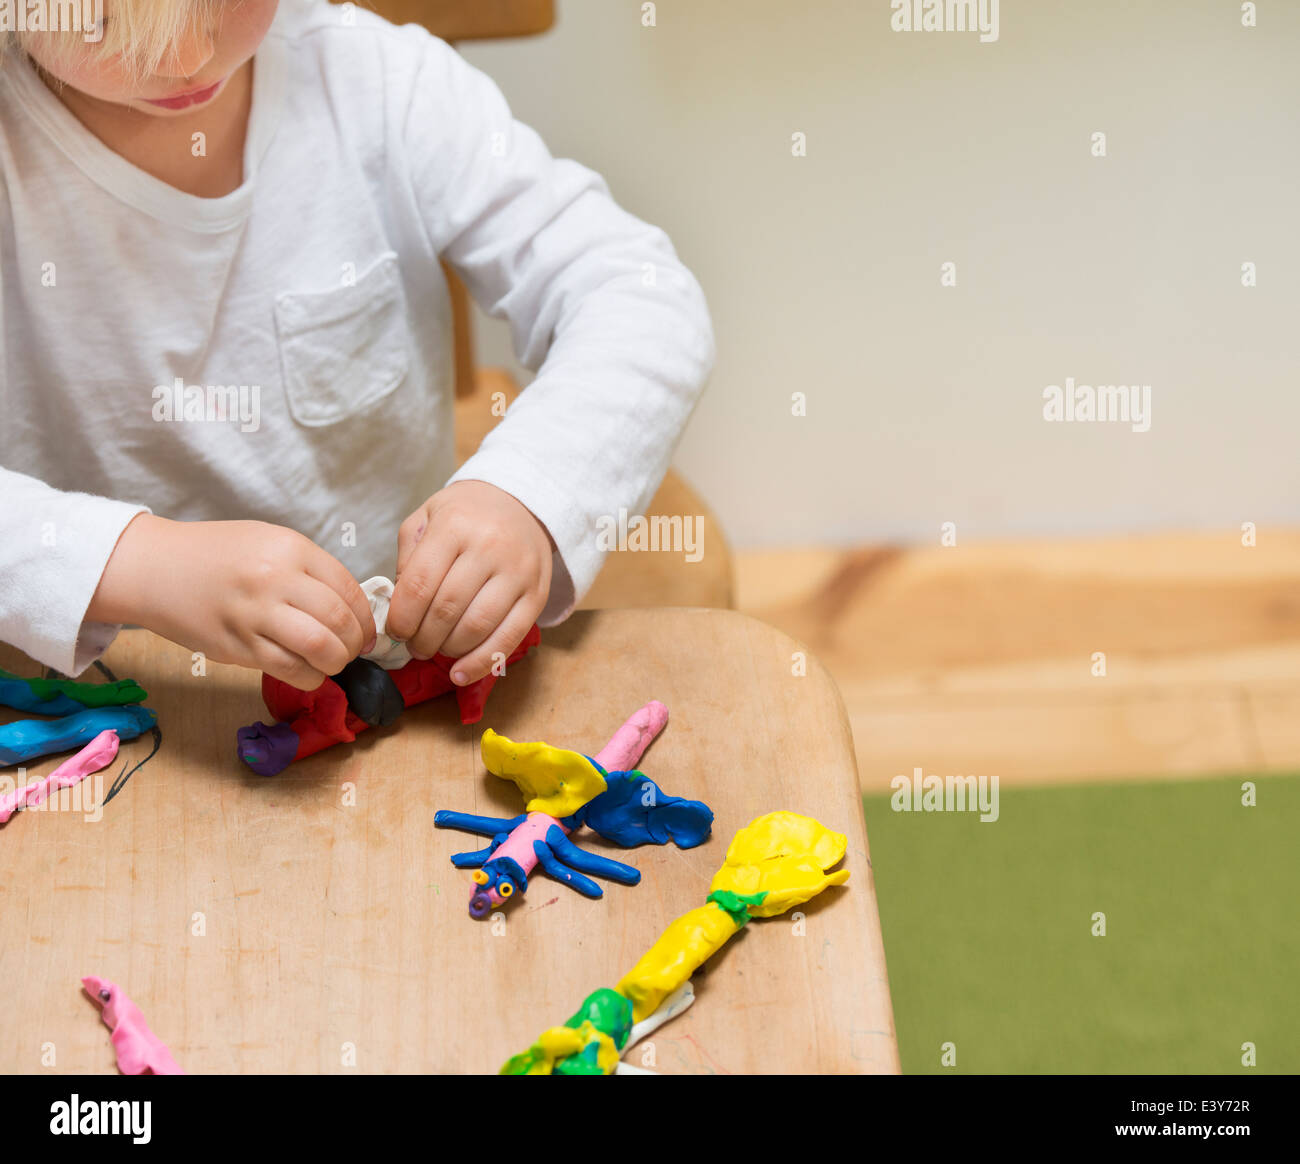 Cropped shot of three year old boy playing with modeling clay - Stock Image